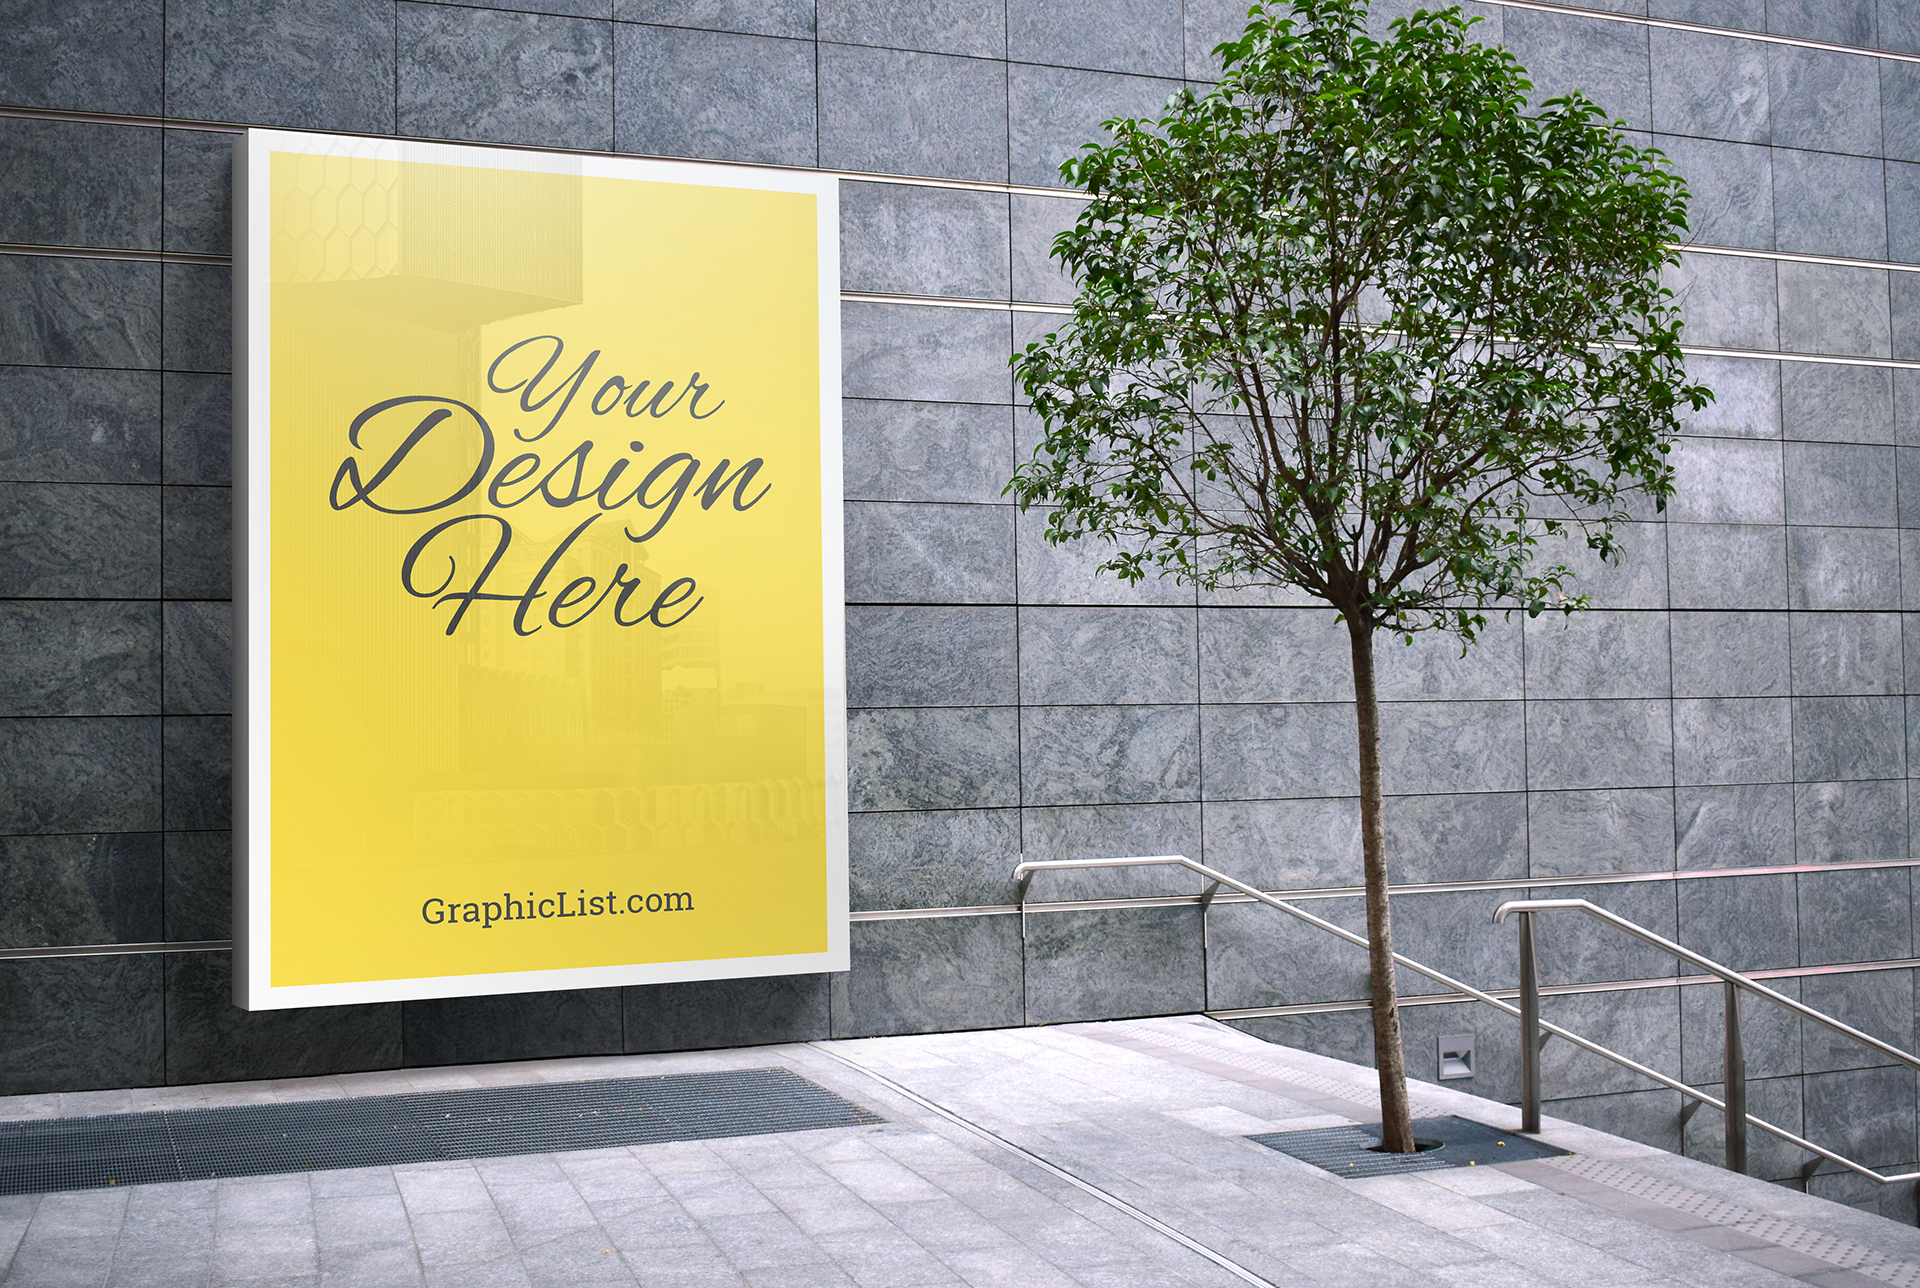 Outdoor advertising mockup #1 1